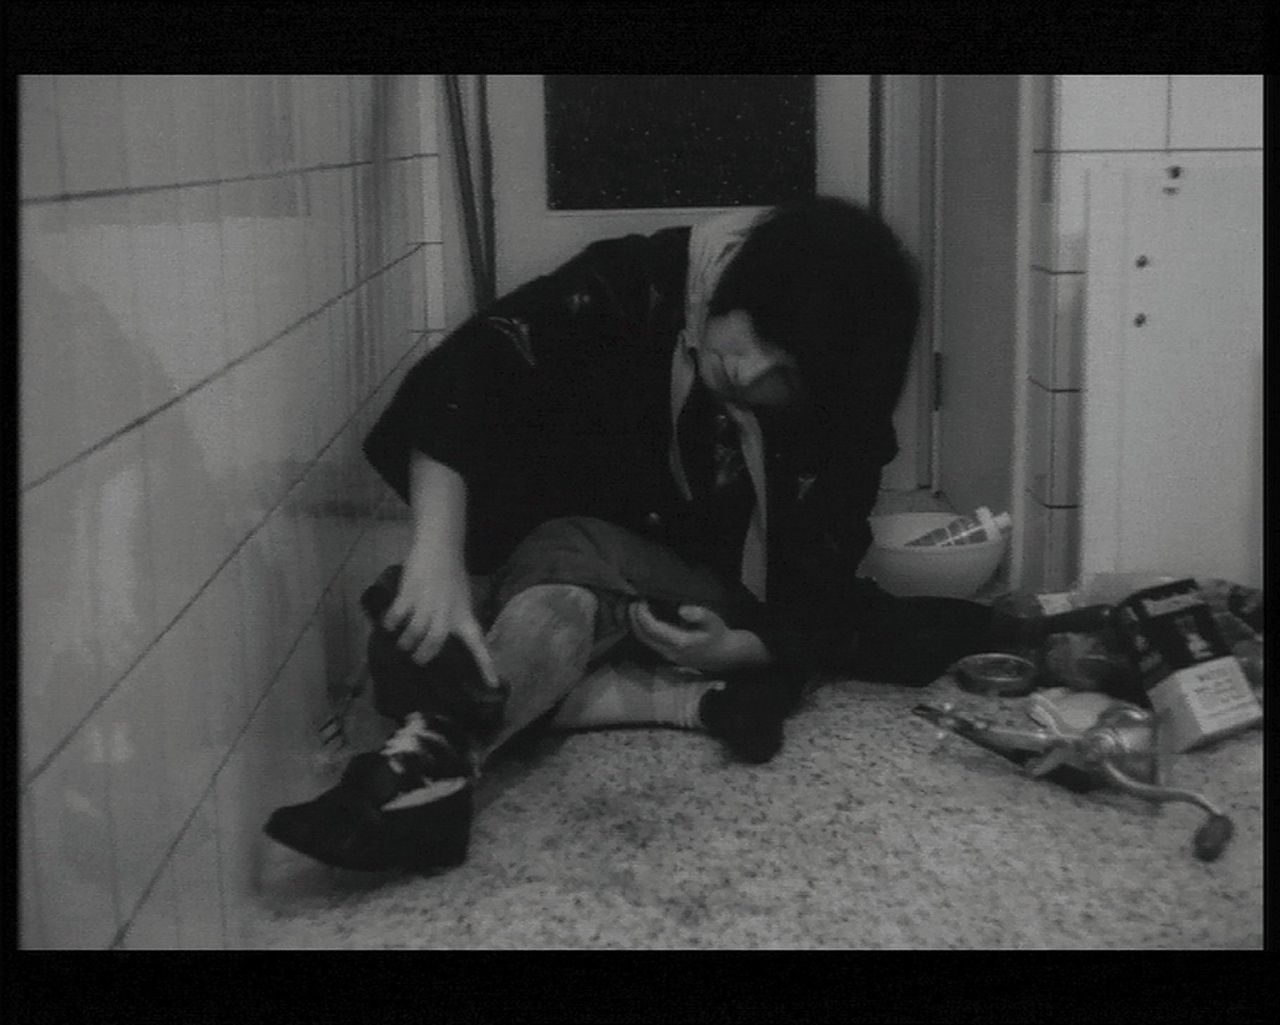 Saute ma ville (1968). Chantal Akerman